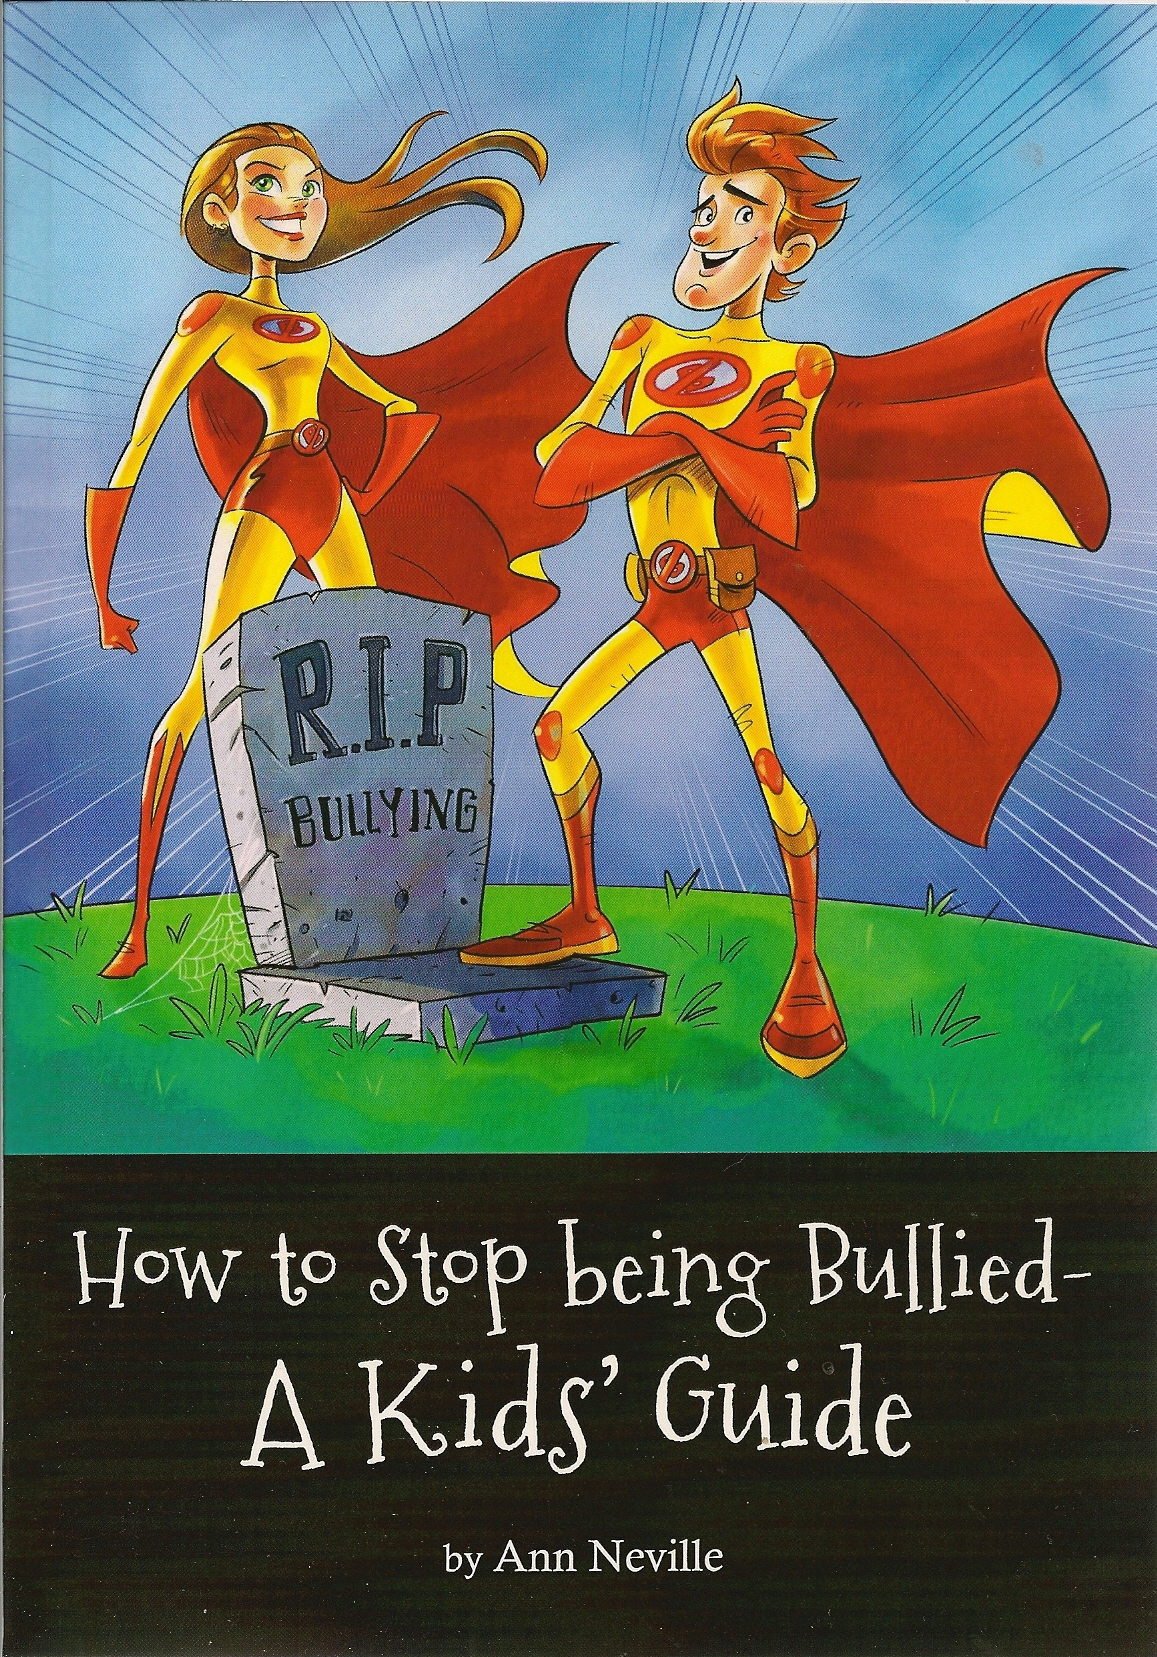 Stop being bullied